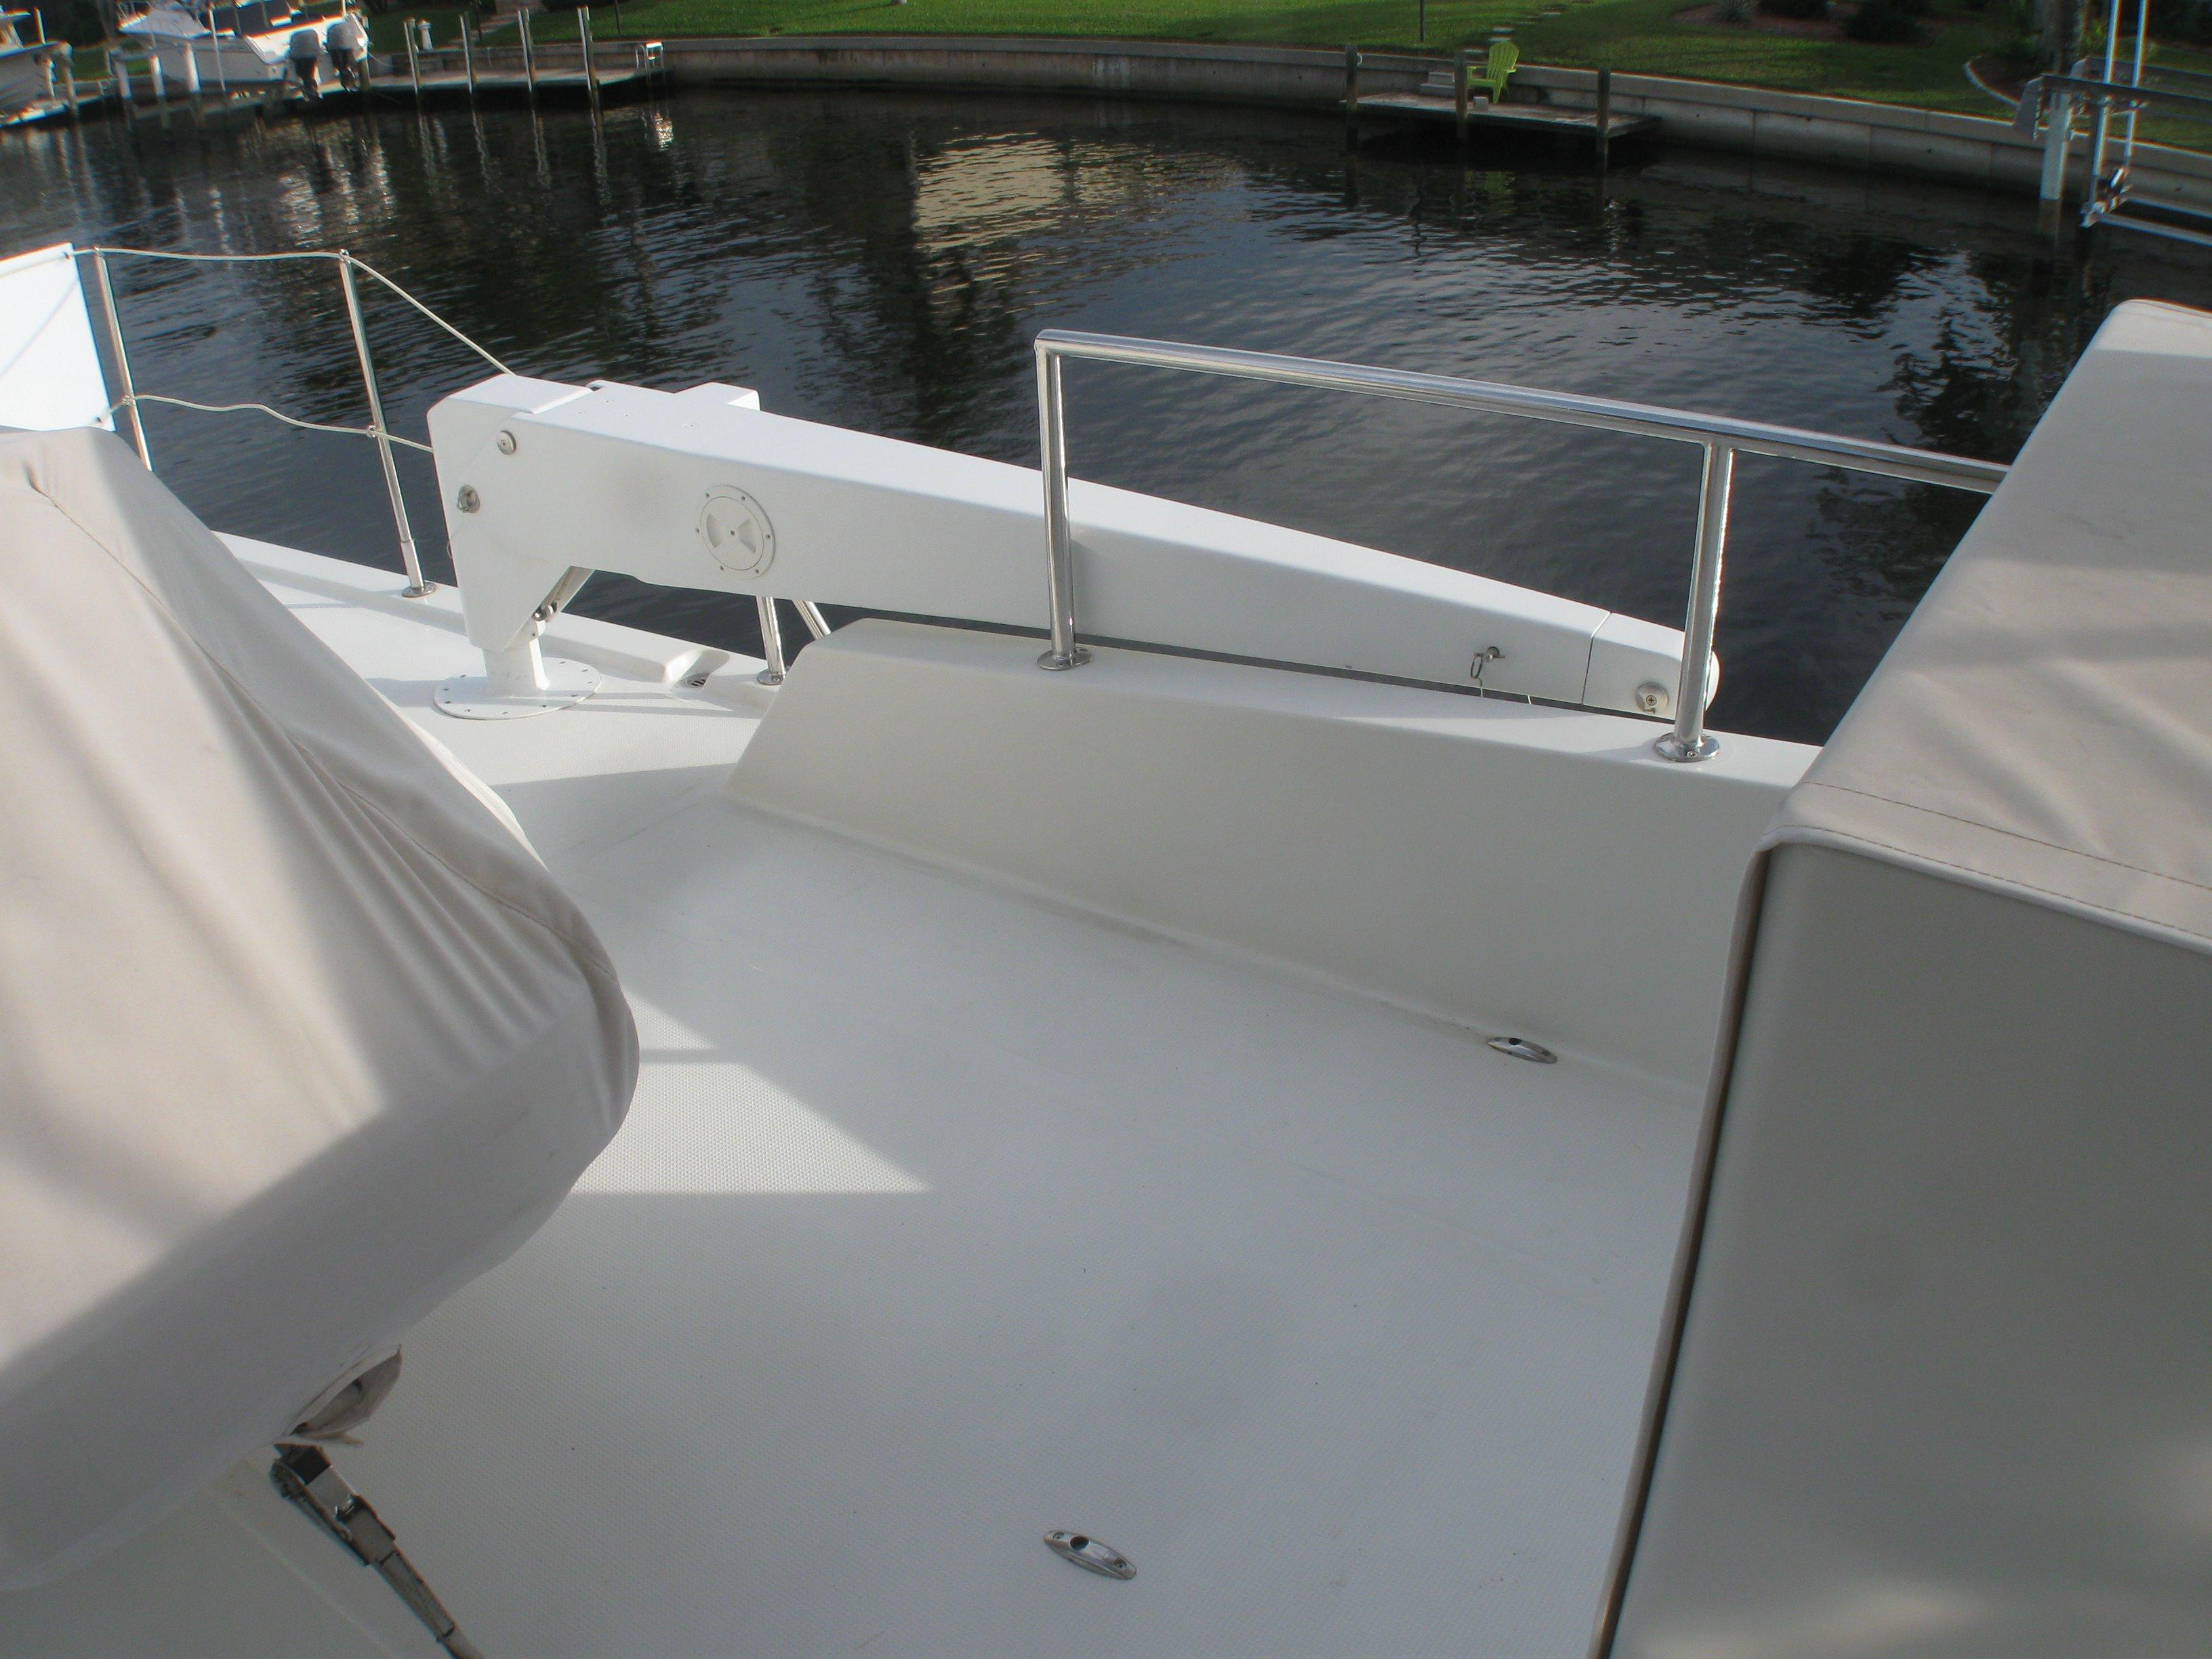 Brower electric boom on flybridge for launching dinghy